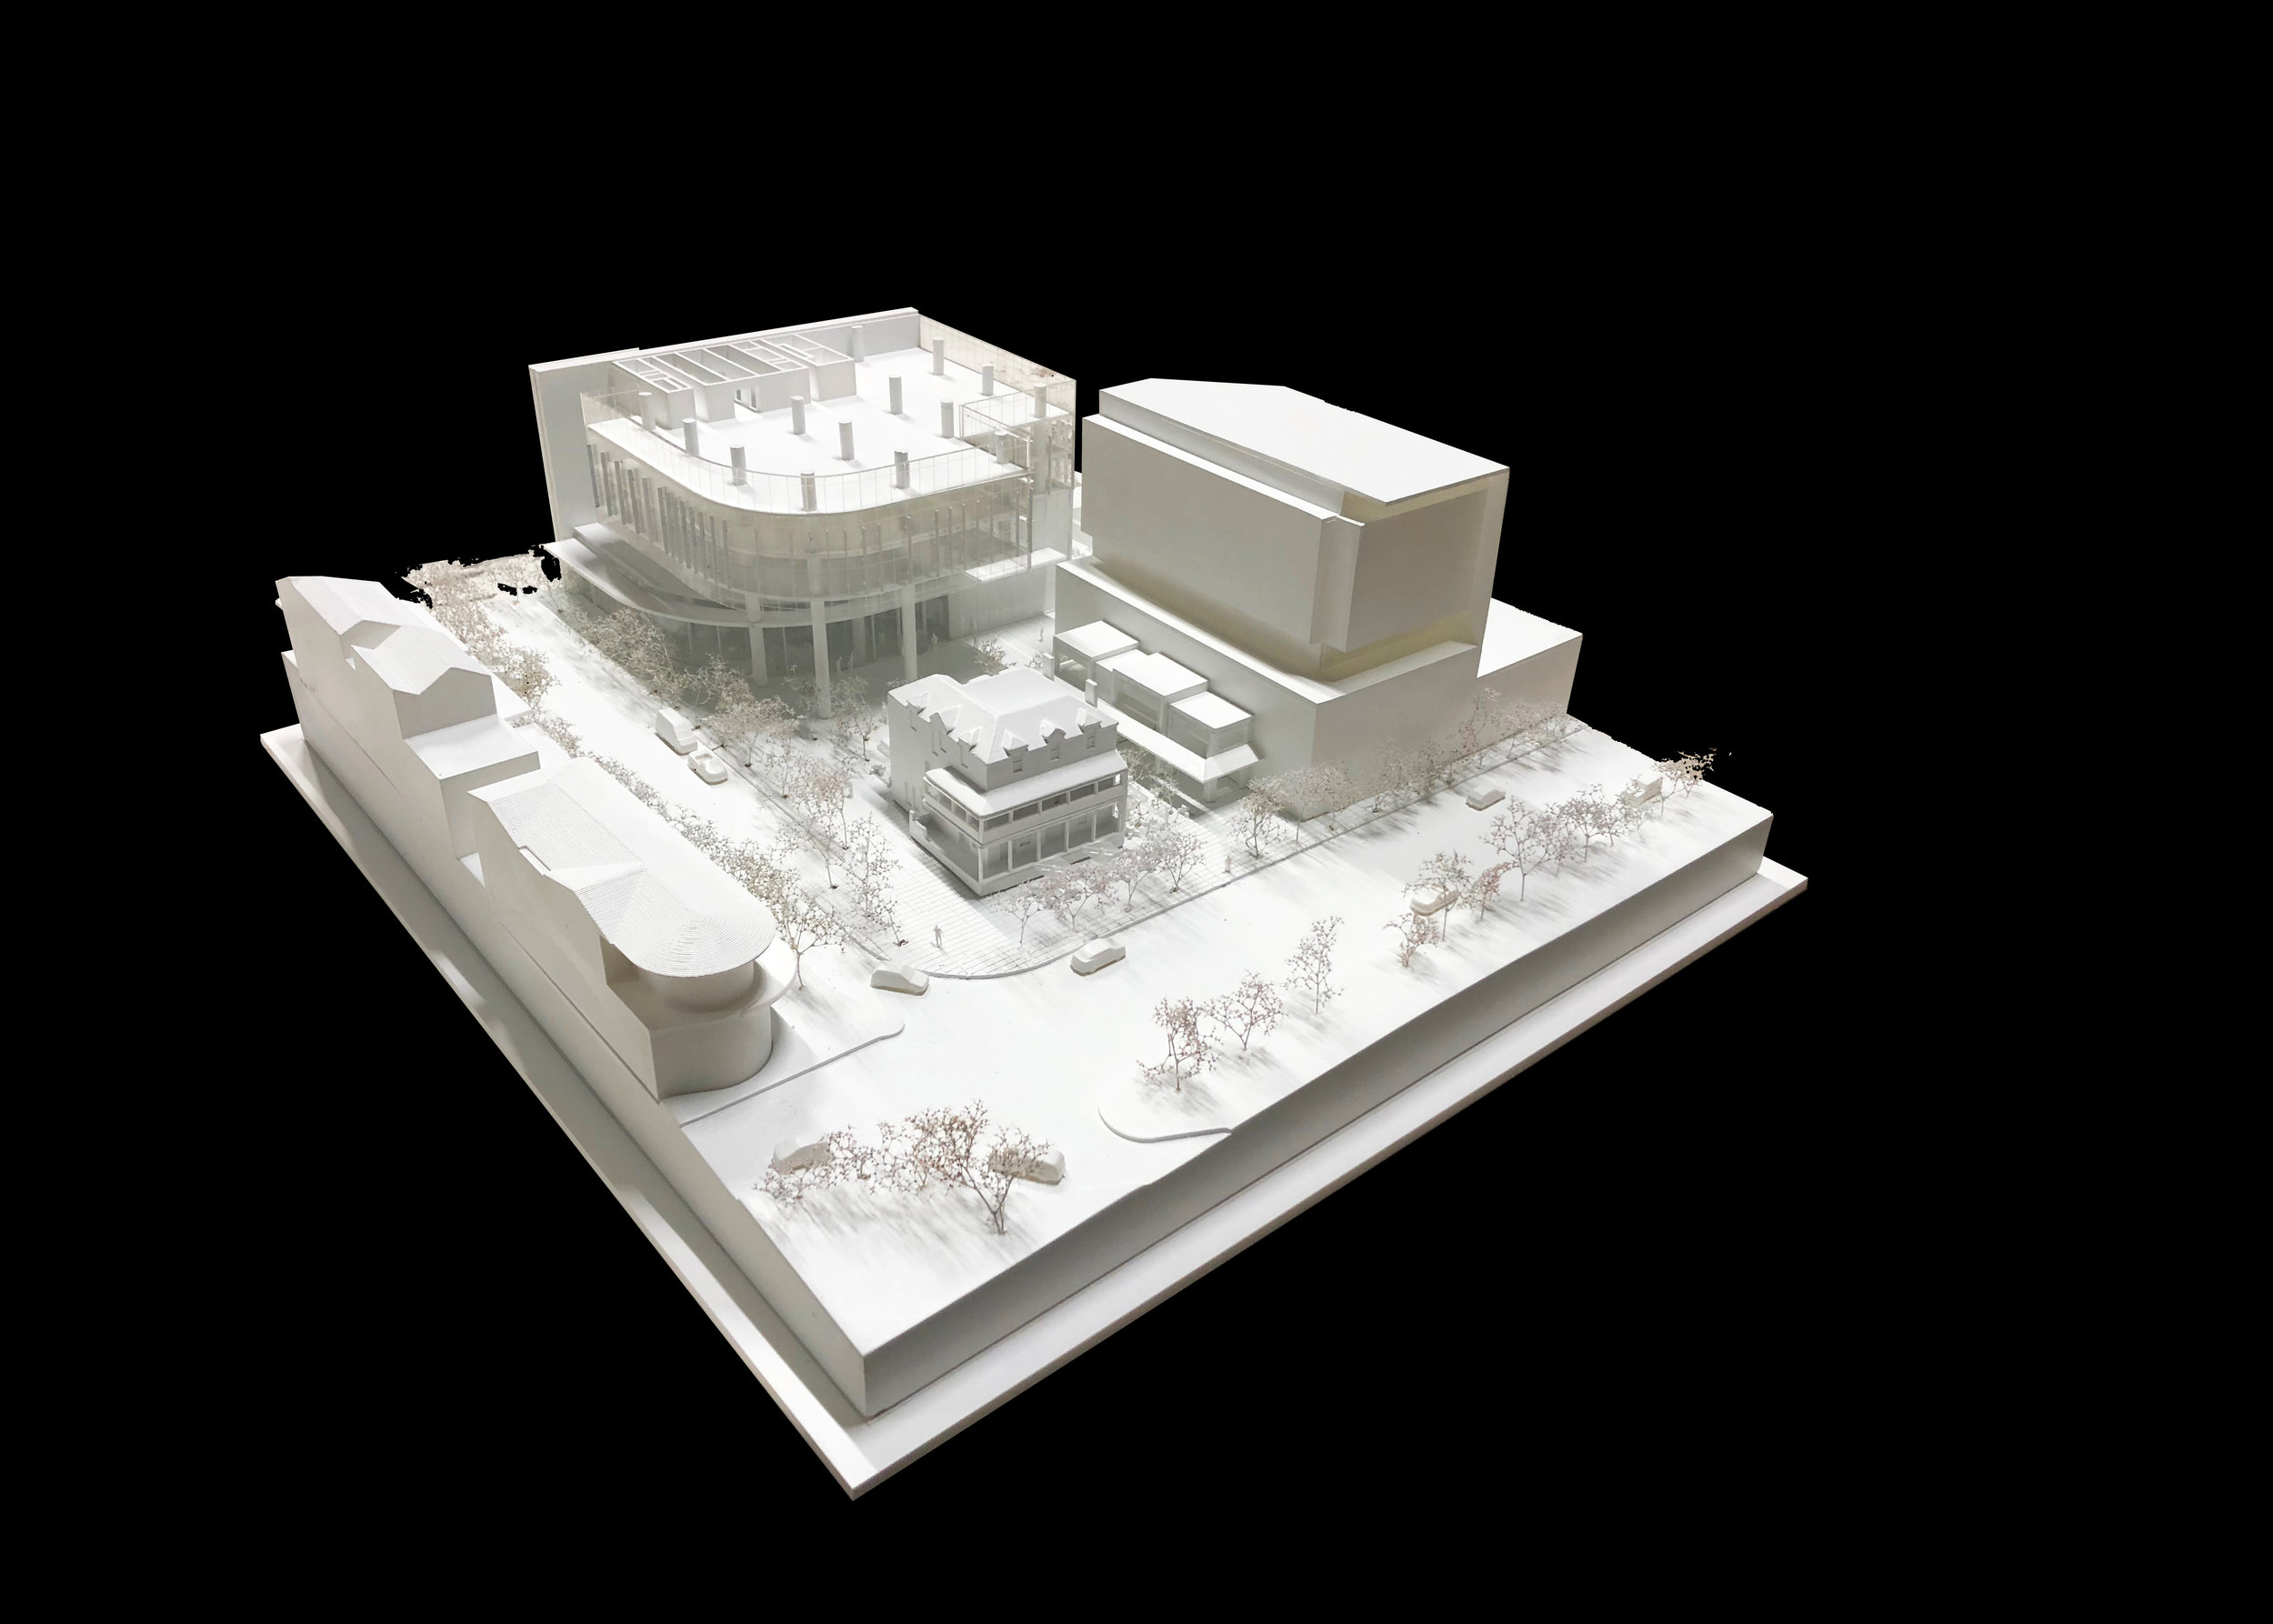 laser+cut+architecture+model+cnc+lasercut+scale+domusvimFKM.jpg